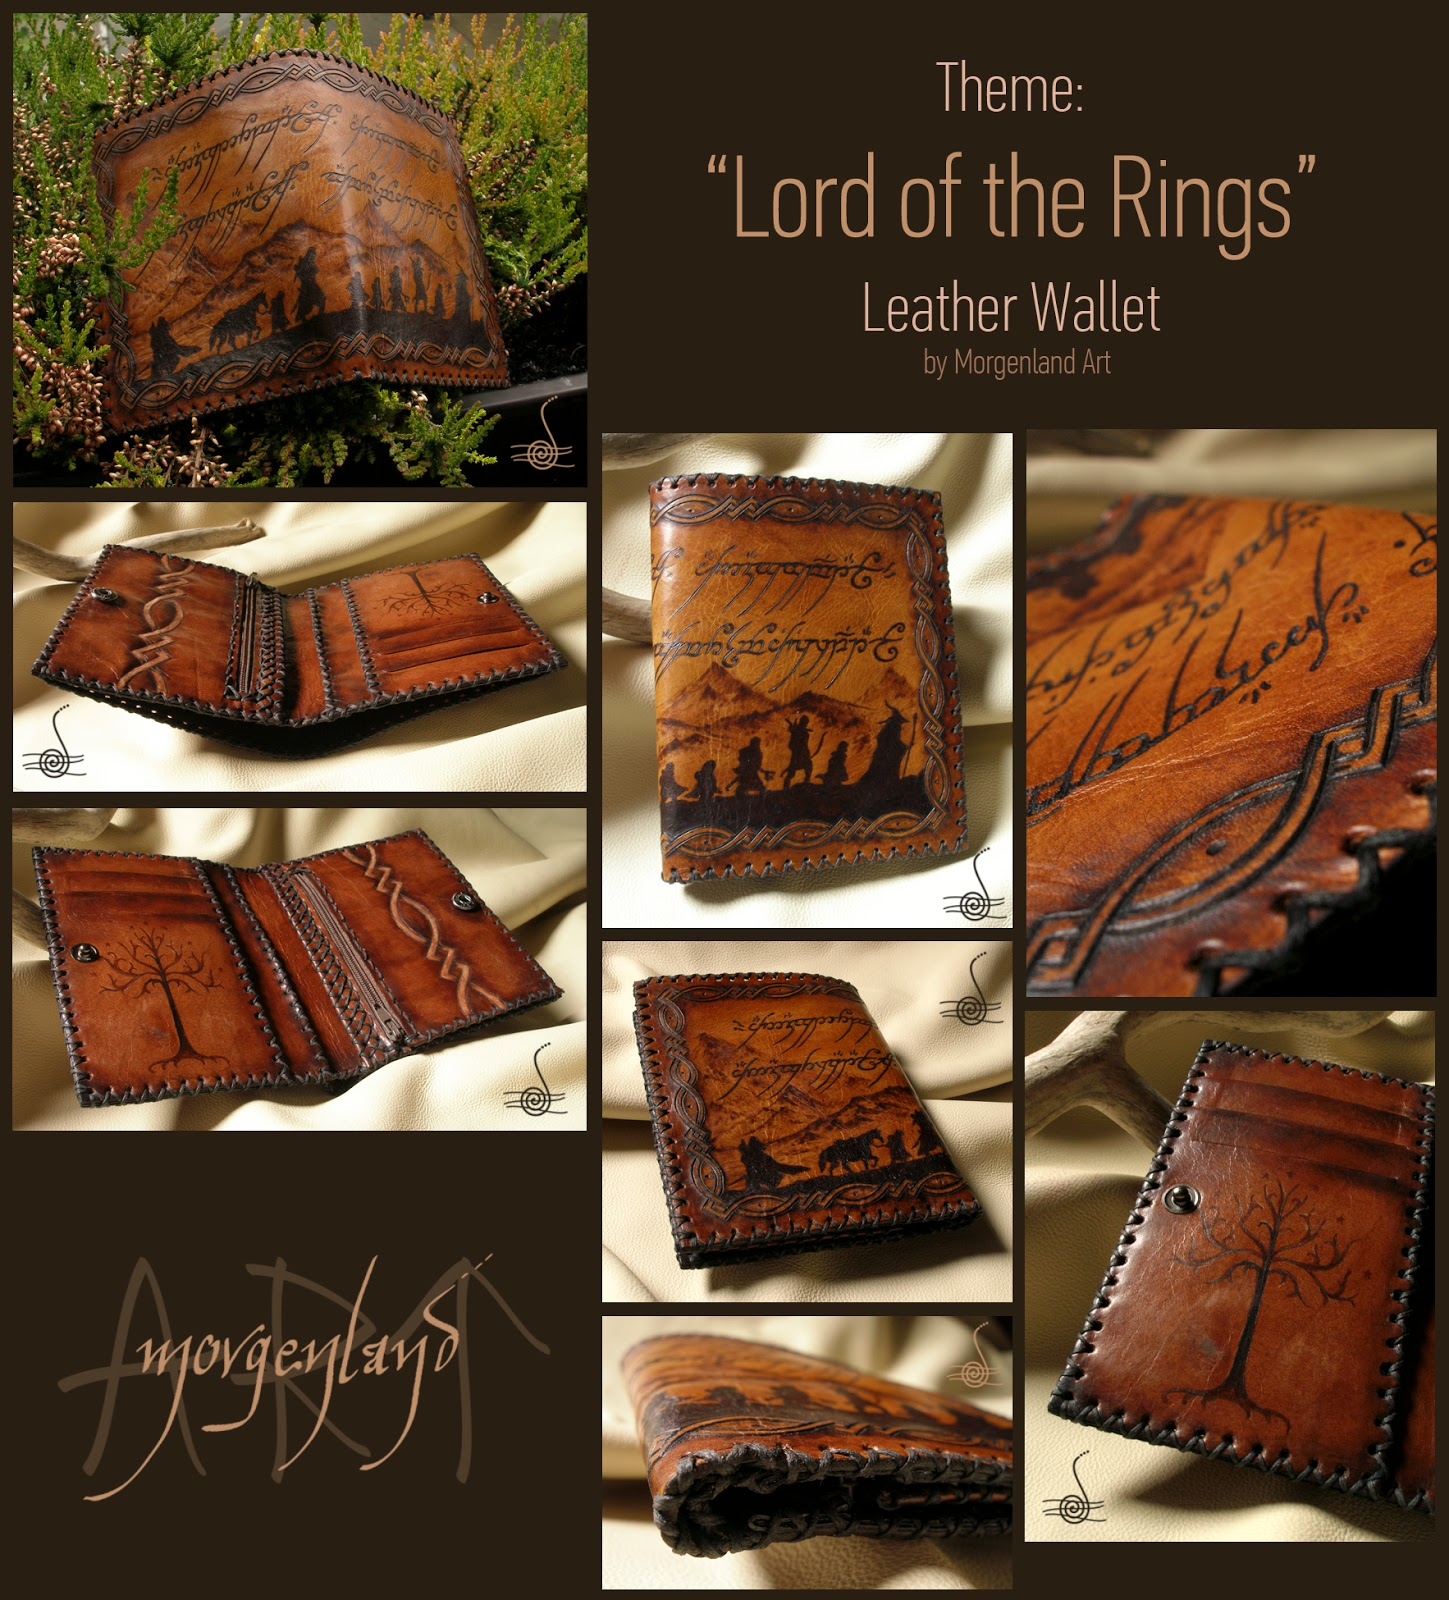 Gmail old theme - Lord Of The Rings Theme Leather Wallet